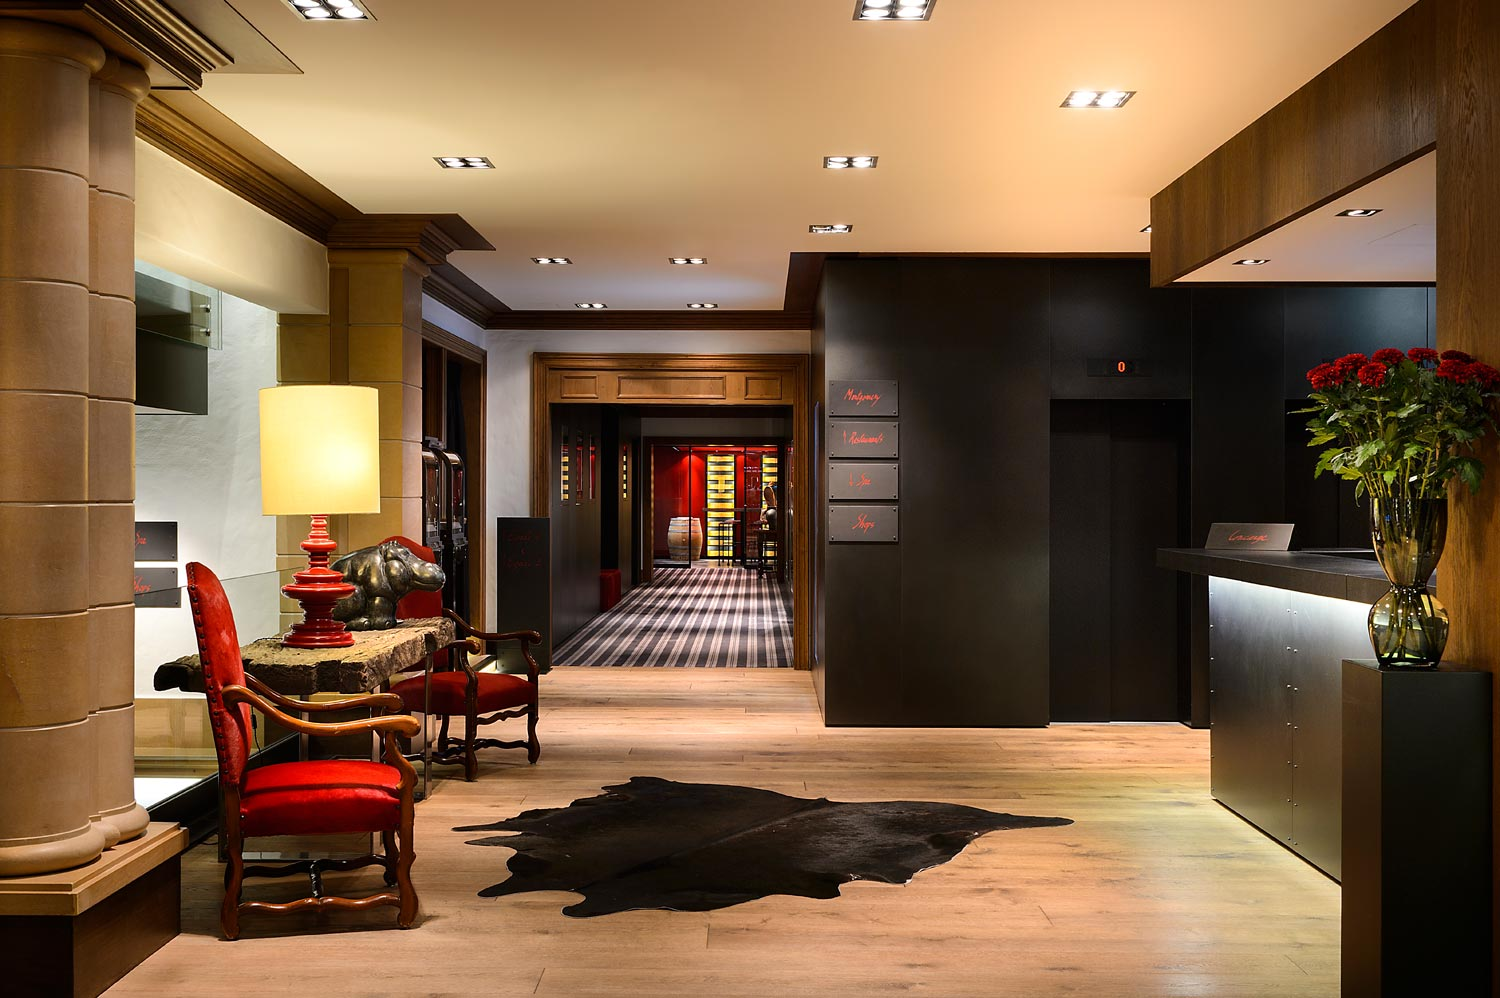 We Review Park Gstaad Hotel - 'The Last Paradise in a Crazy World' 8